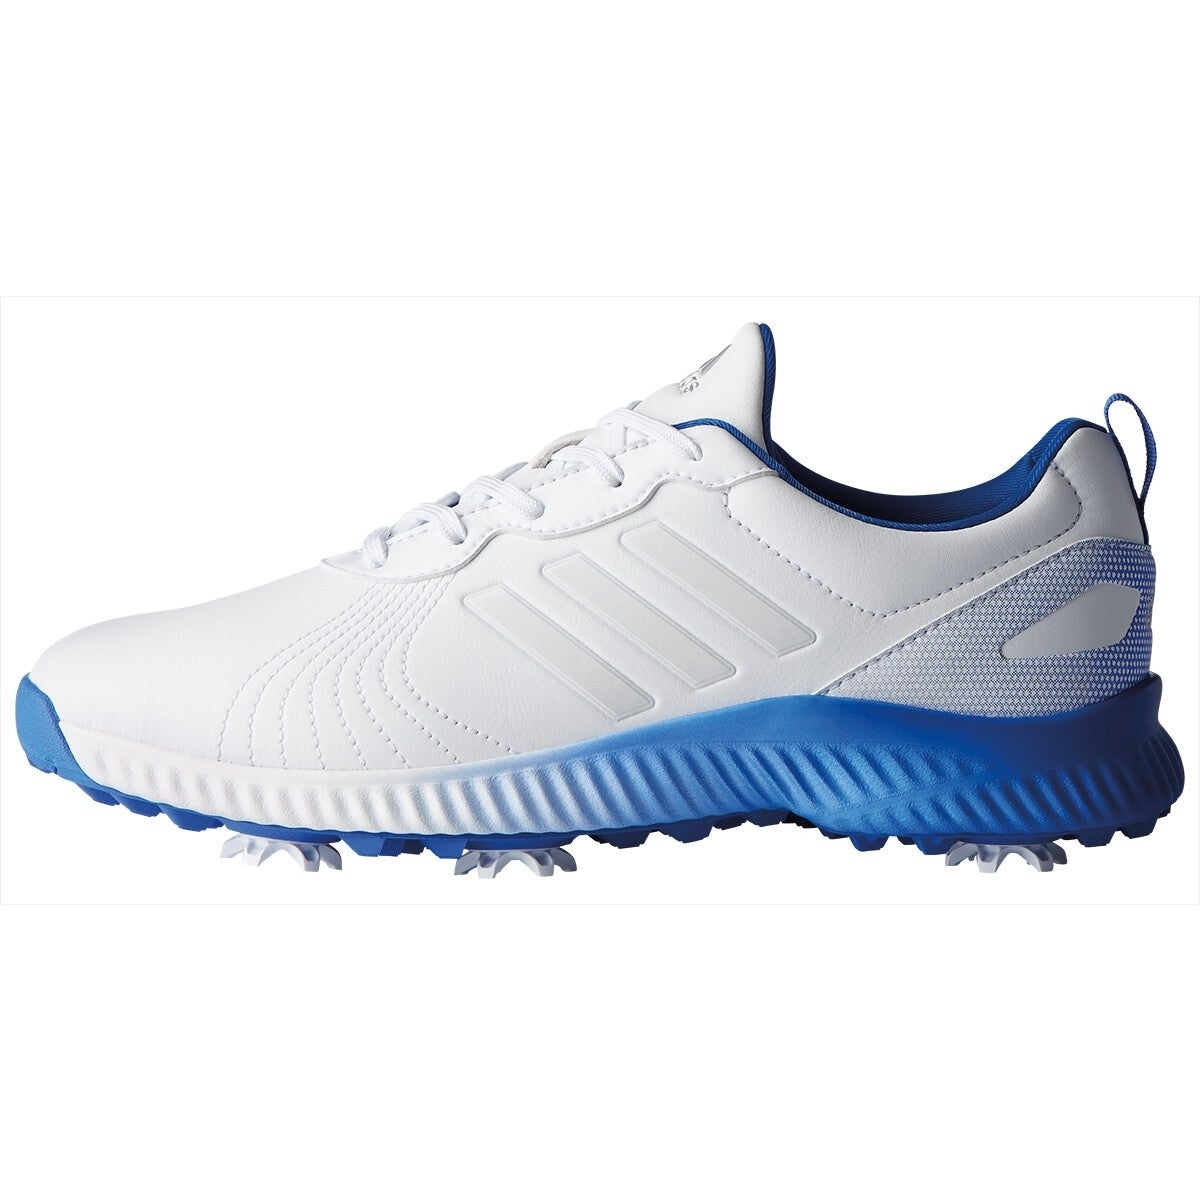 b1a5defba Shop New Adidas Women s Response Bounce Cloud White Cloud White Hi-Res Blue  Golf Shoes F33665 - Free Shipping Today - Overstock - 26234265